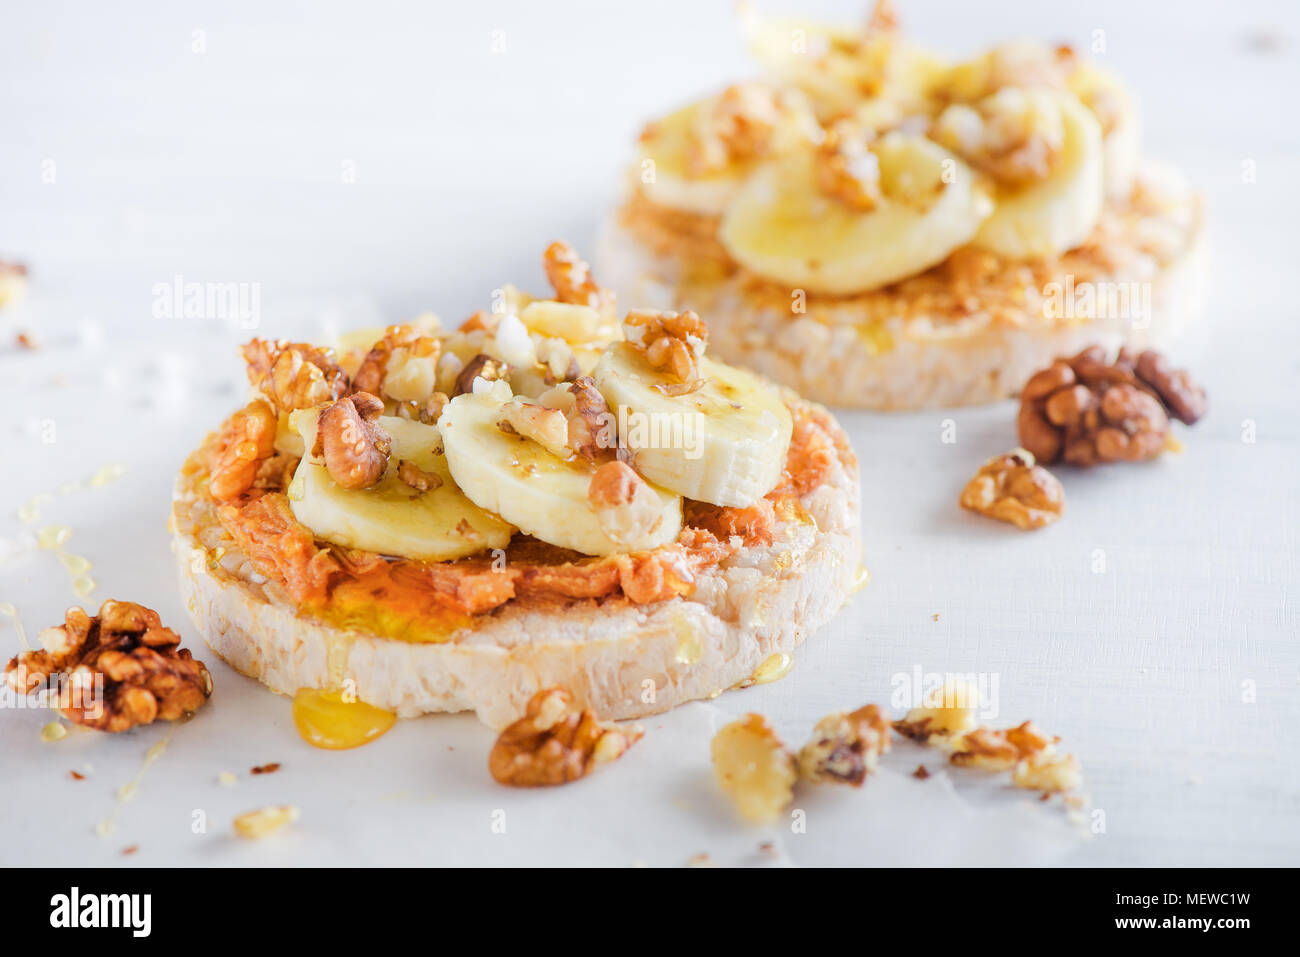 Crisp bread banana and peanut butter snack. Healthy breakfast with walnuts and honey. High key diet concept. - Stock Image